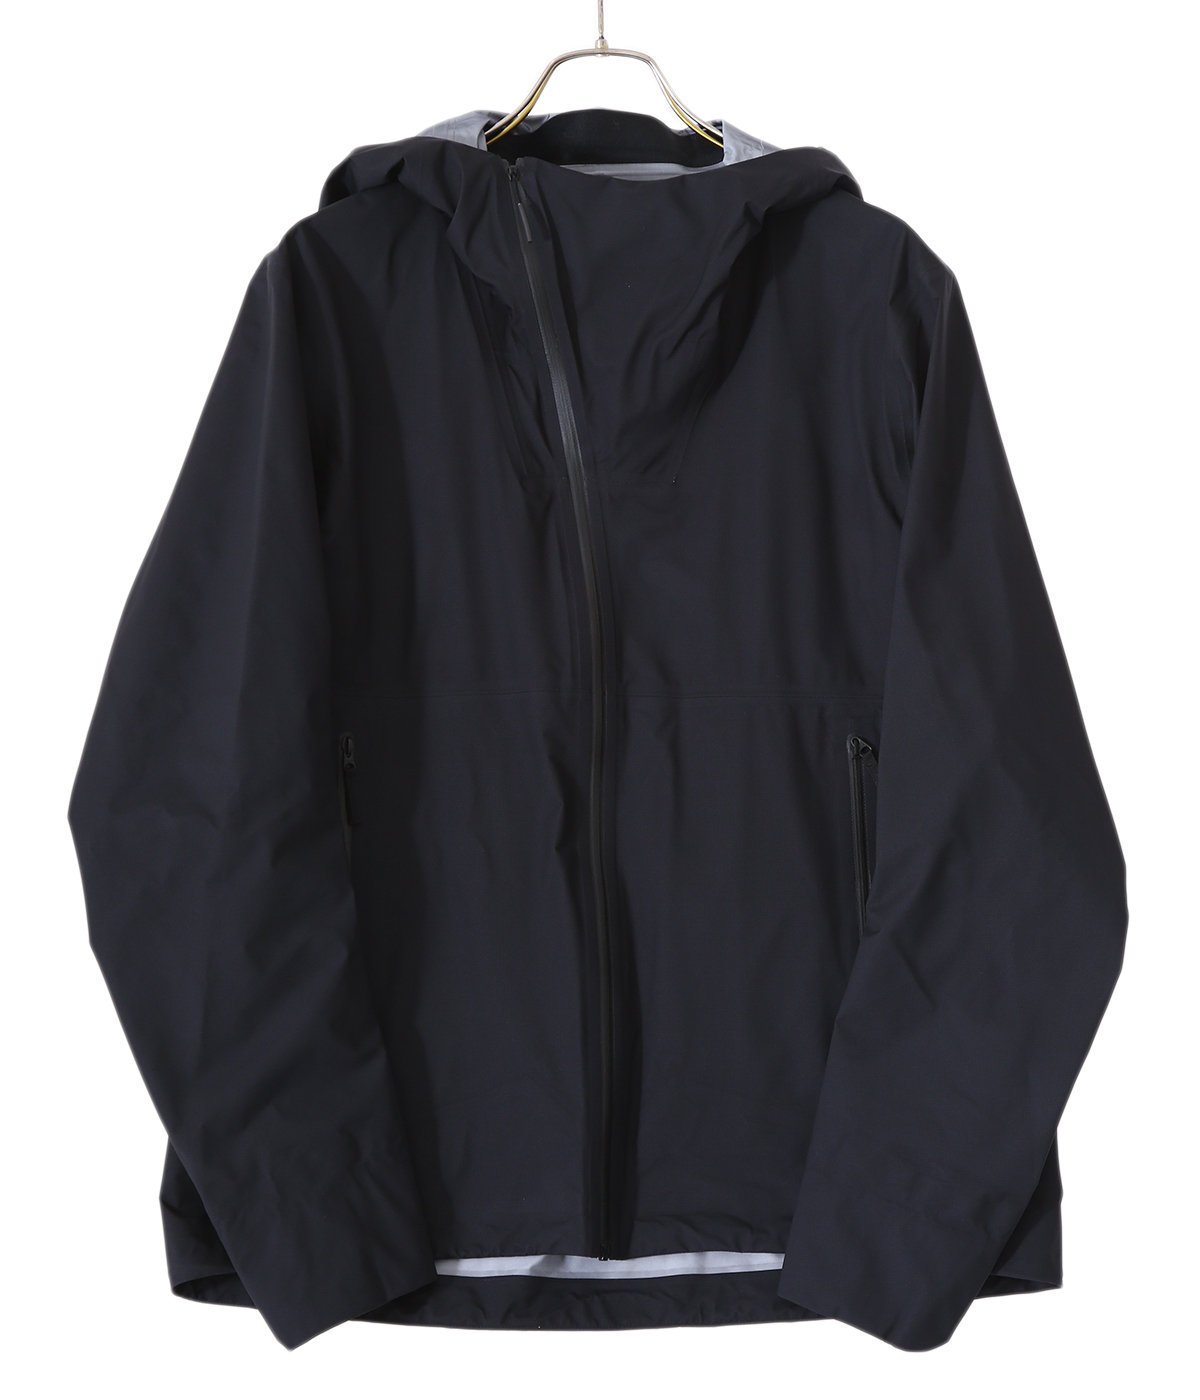 【予約】Deploy LT Jacket Men's